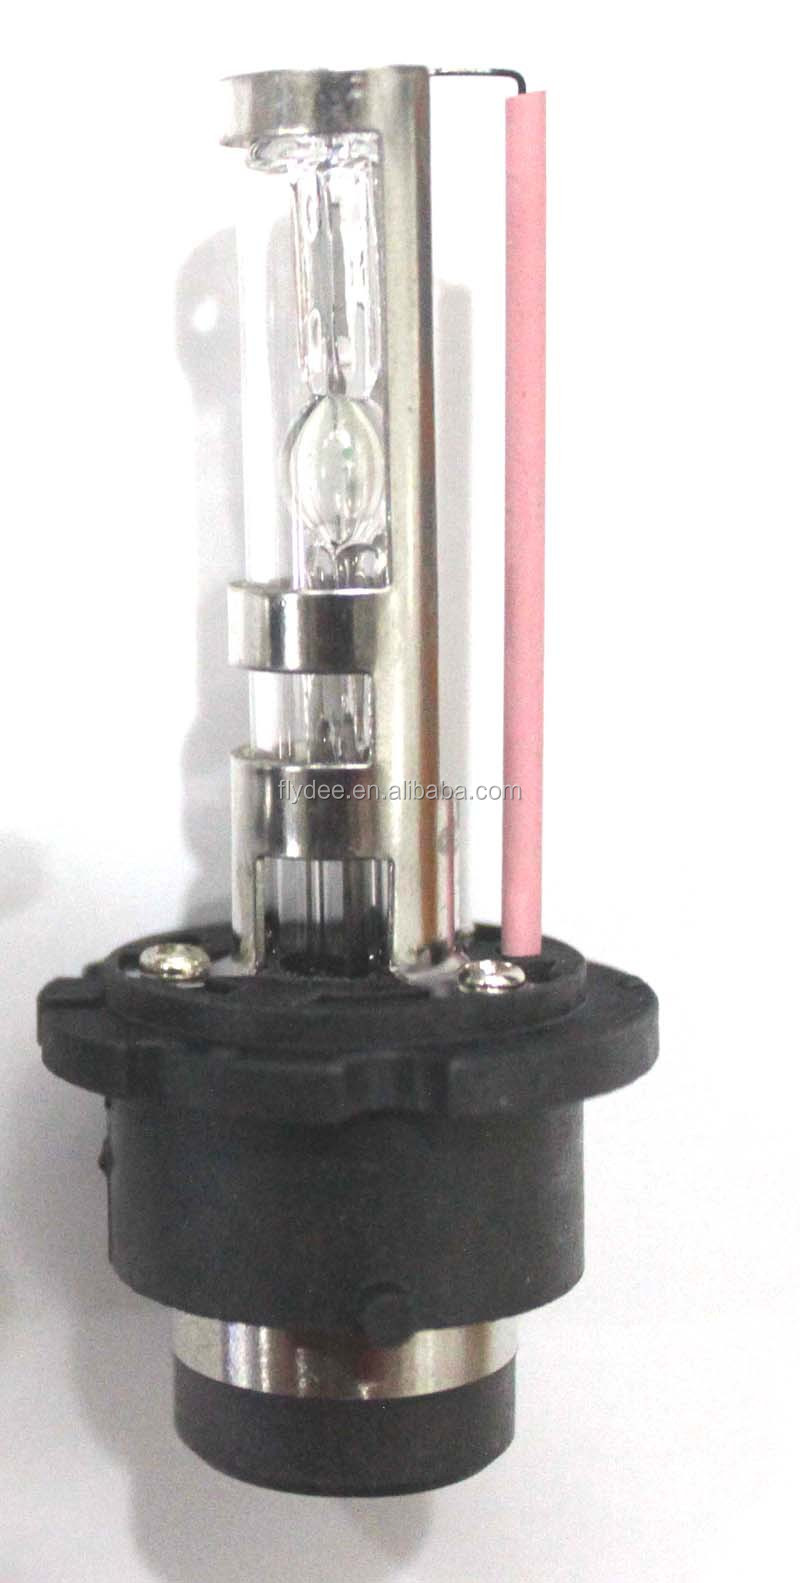 Auto headlight D2K xenon HID bulb new model with metal base and other D series bulb D2R,D2C,D2S HID xenon lamp